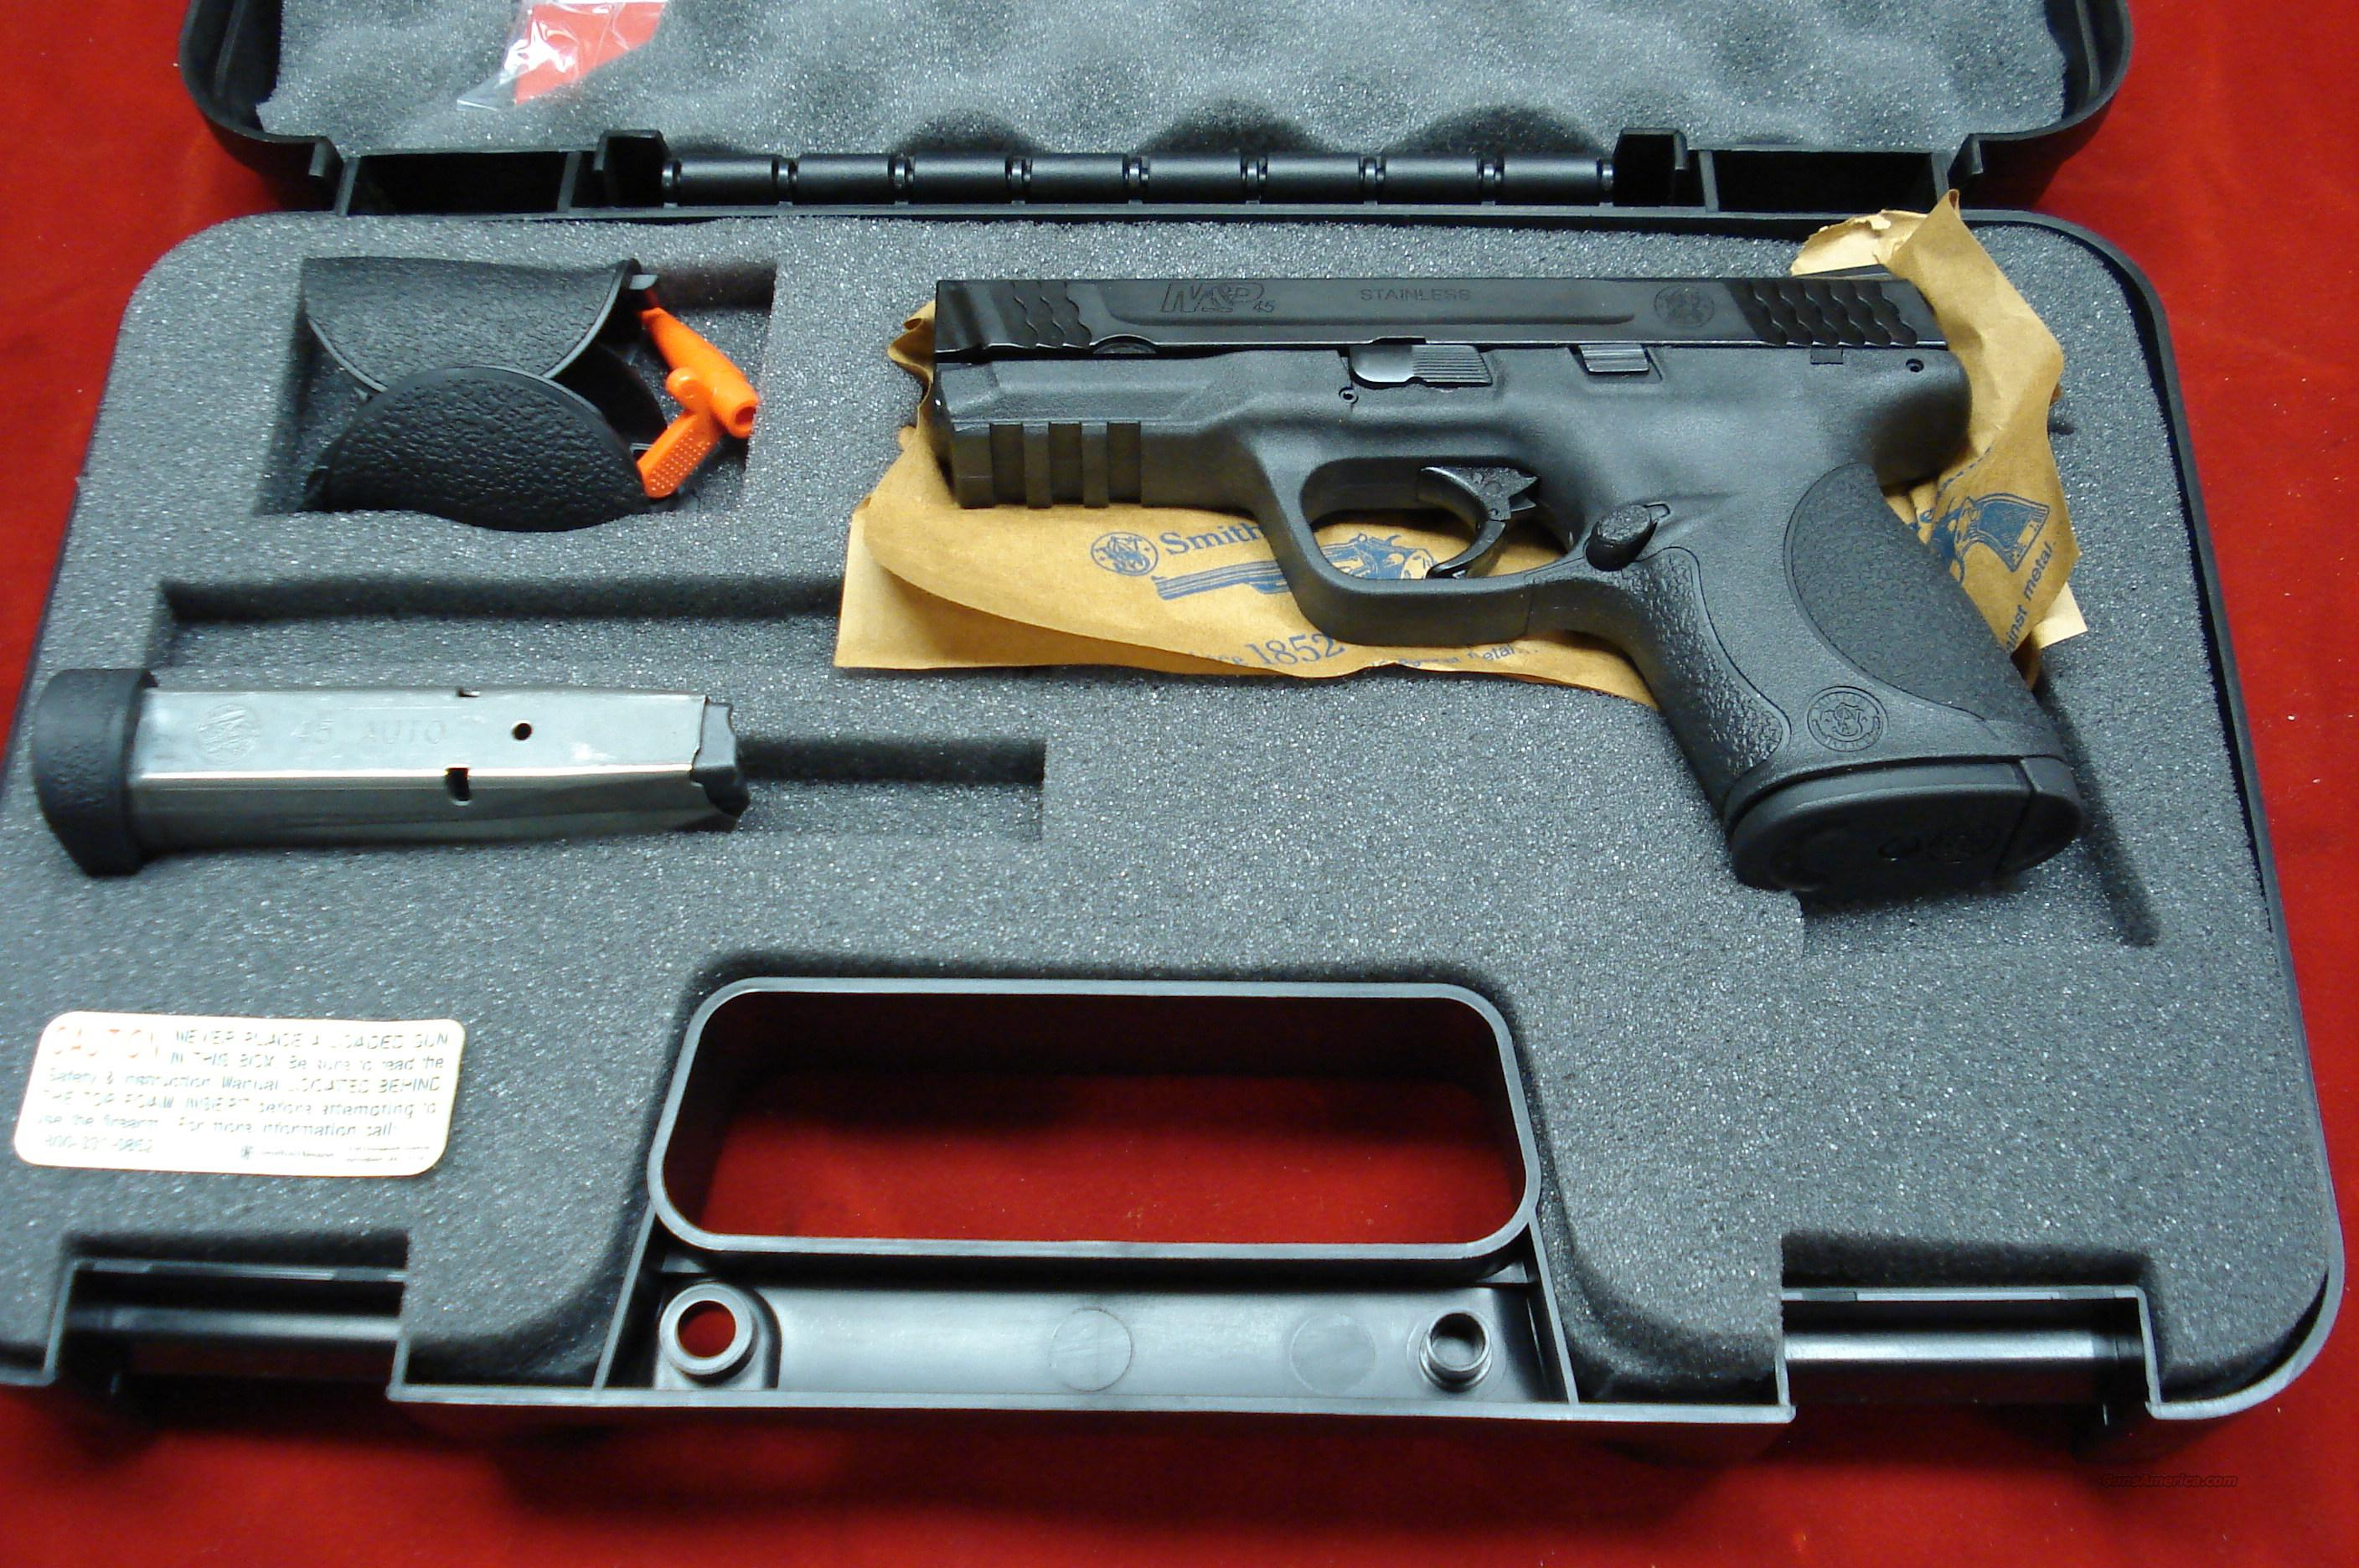 SMITH AND WESSON M&P COMPACT 45ACP NEW   Guns > Pistols > Smith & Wesson Pistols - Autos > Polymer Frame